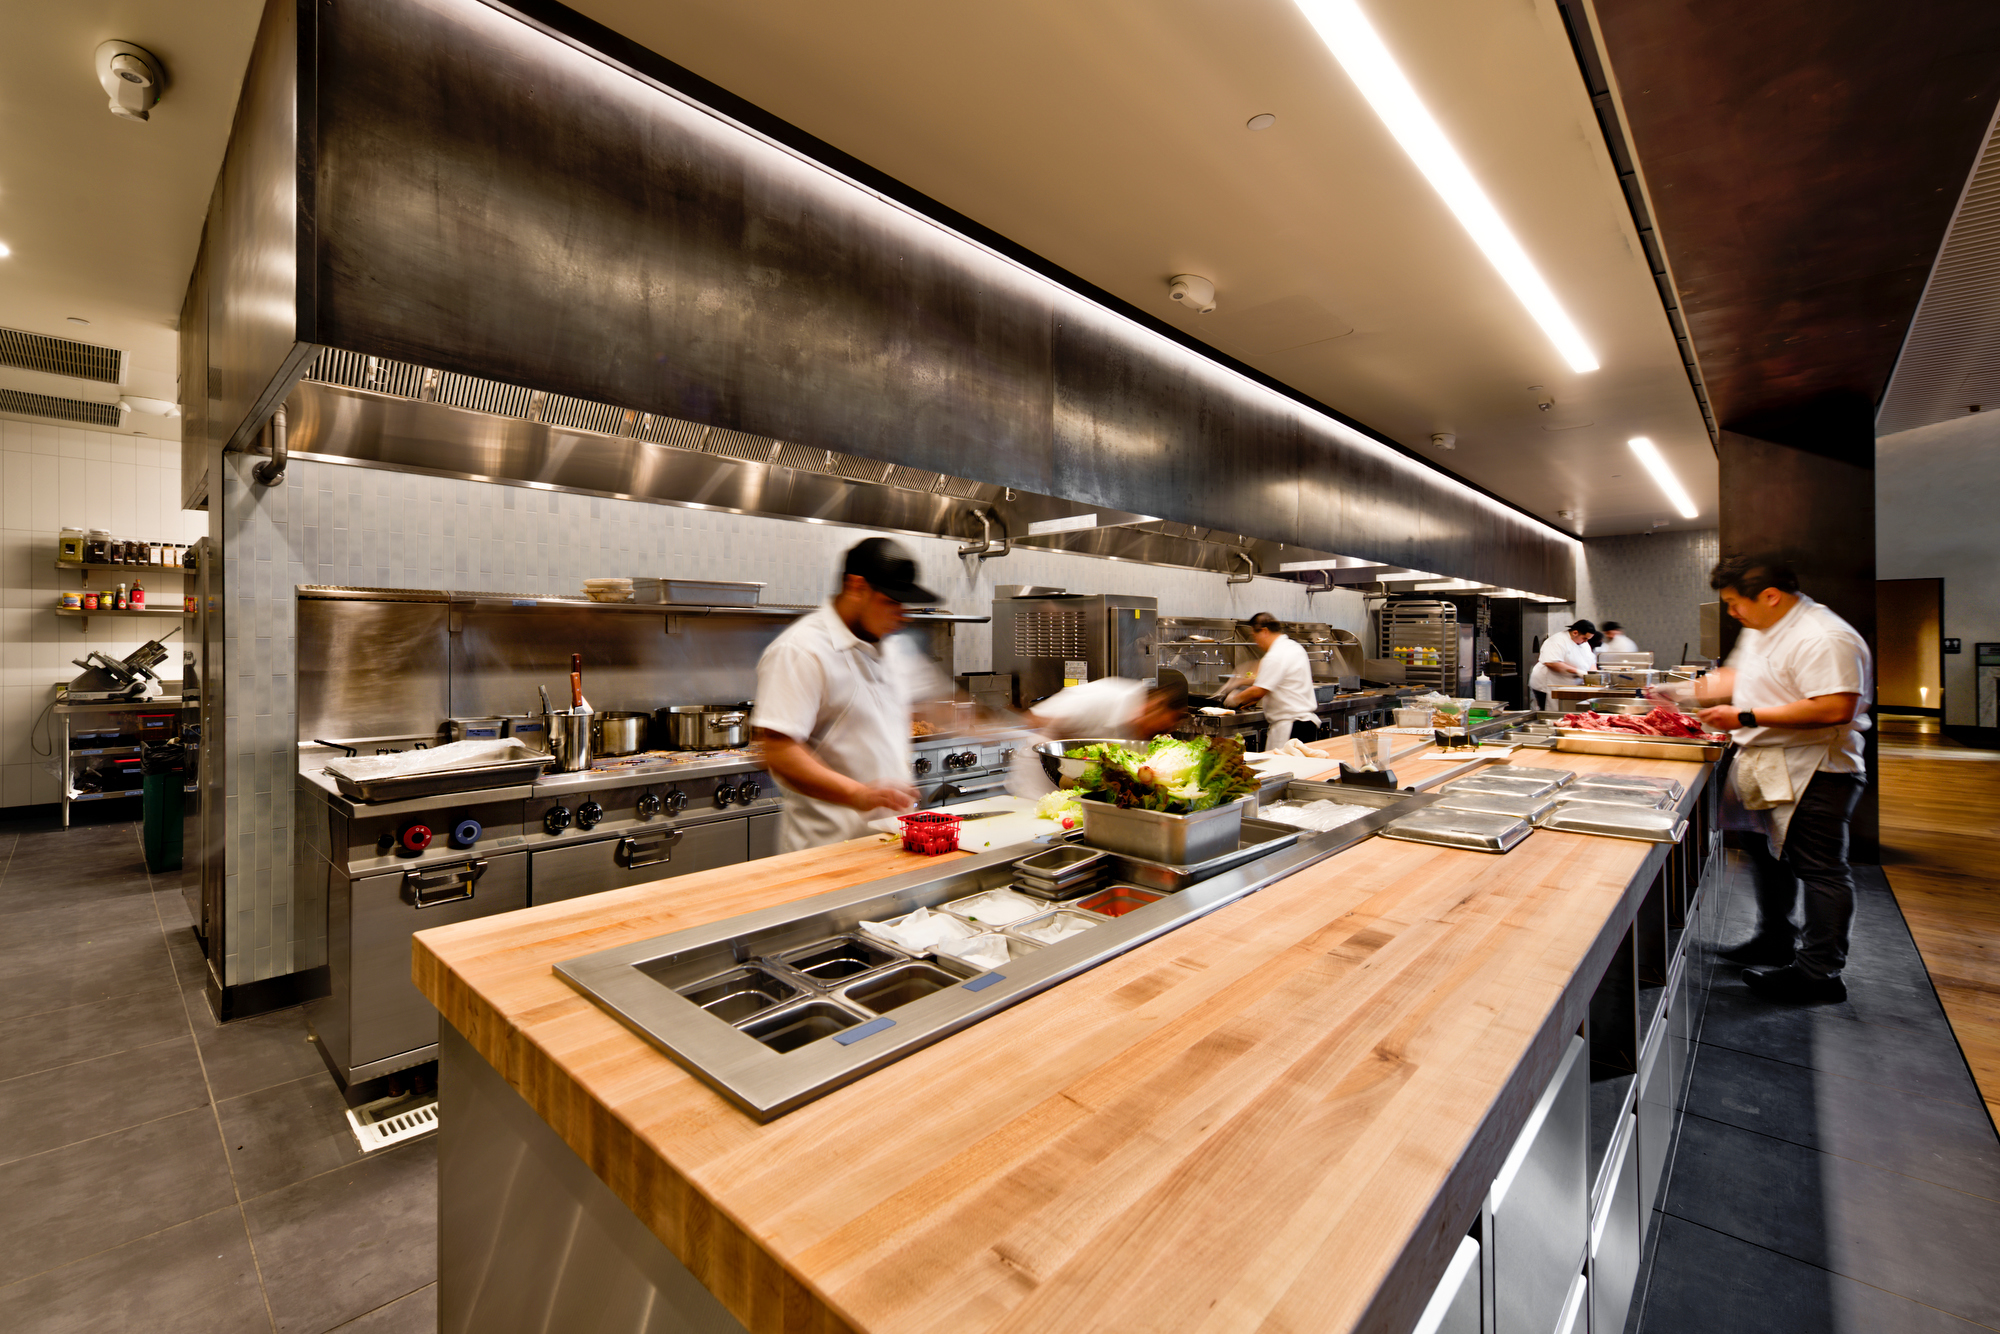 The open kitchen at The Slanted Door